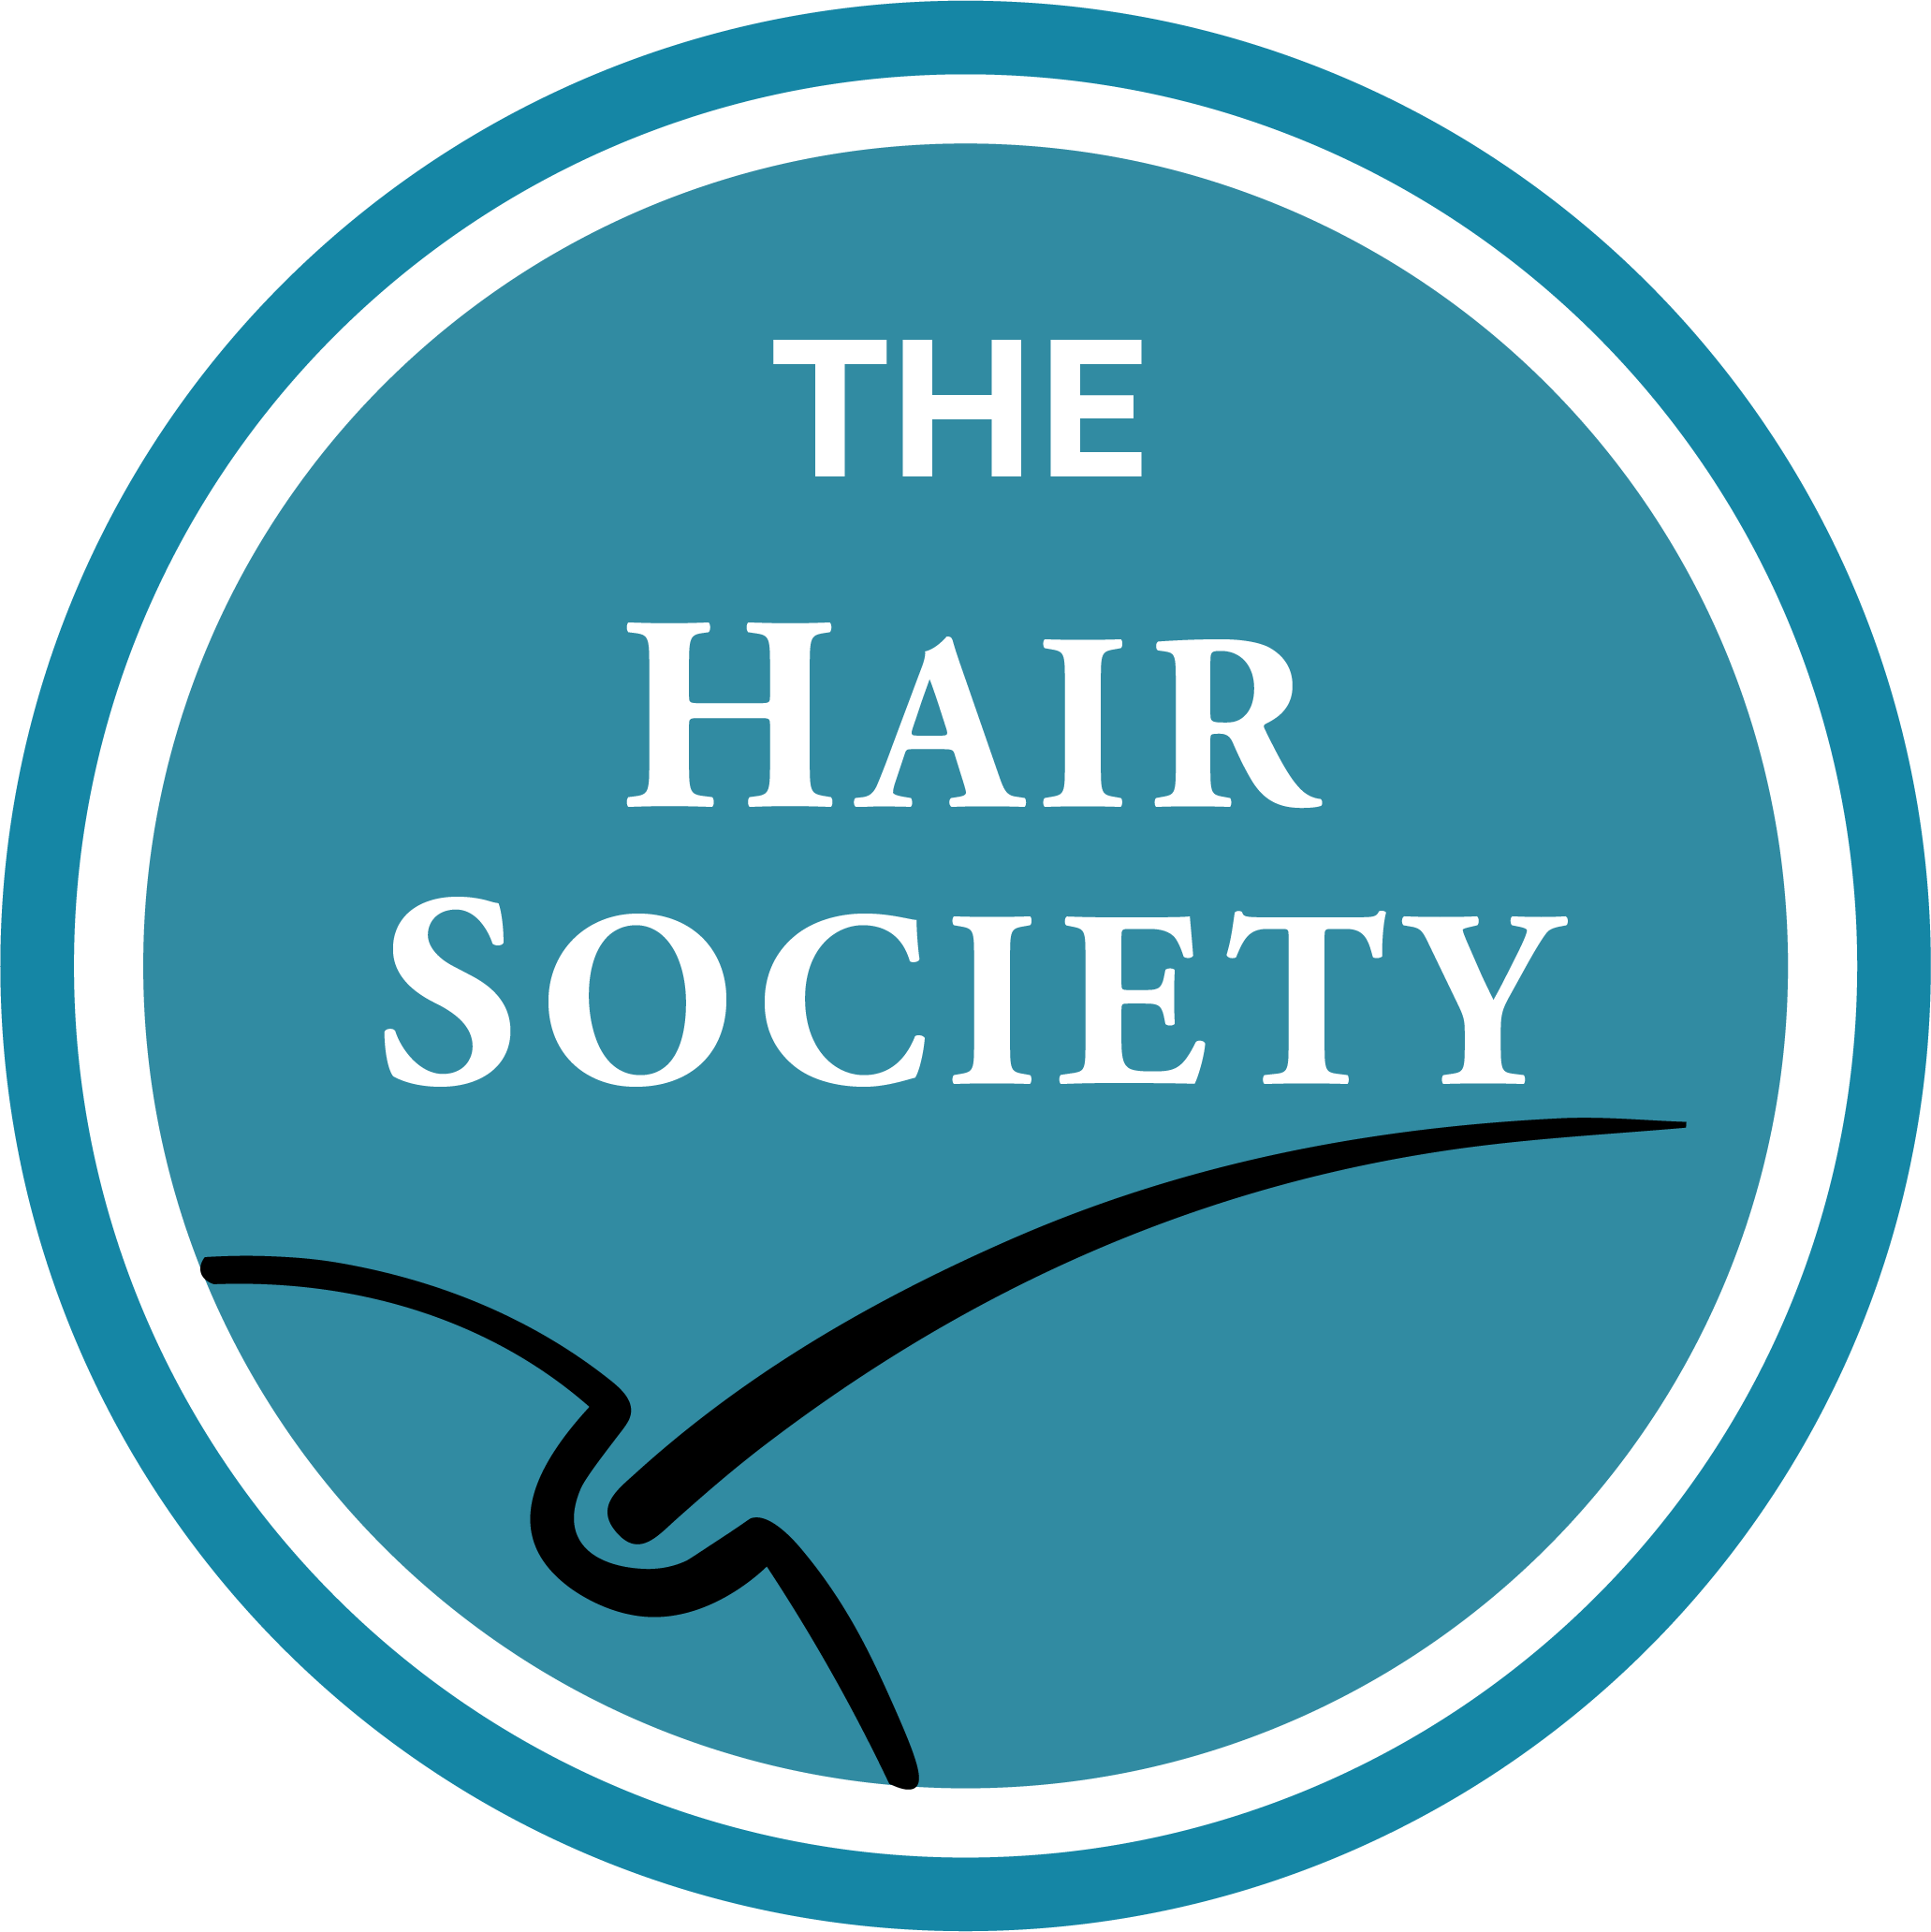 The Hair Society - The Premiere source for breaking news, information, continuing education, and business development for hair salons worldwide.